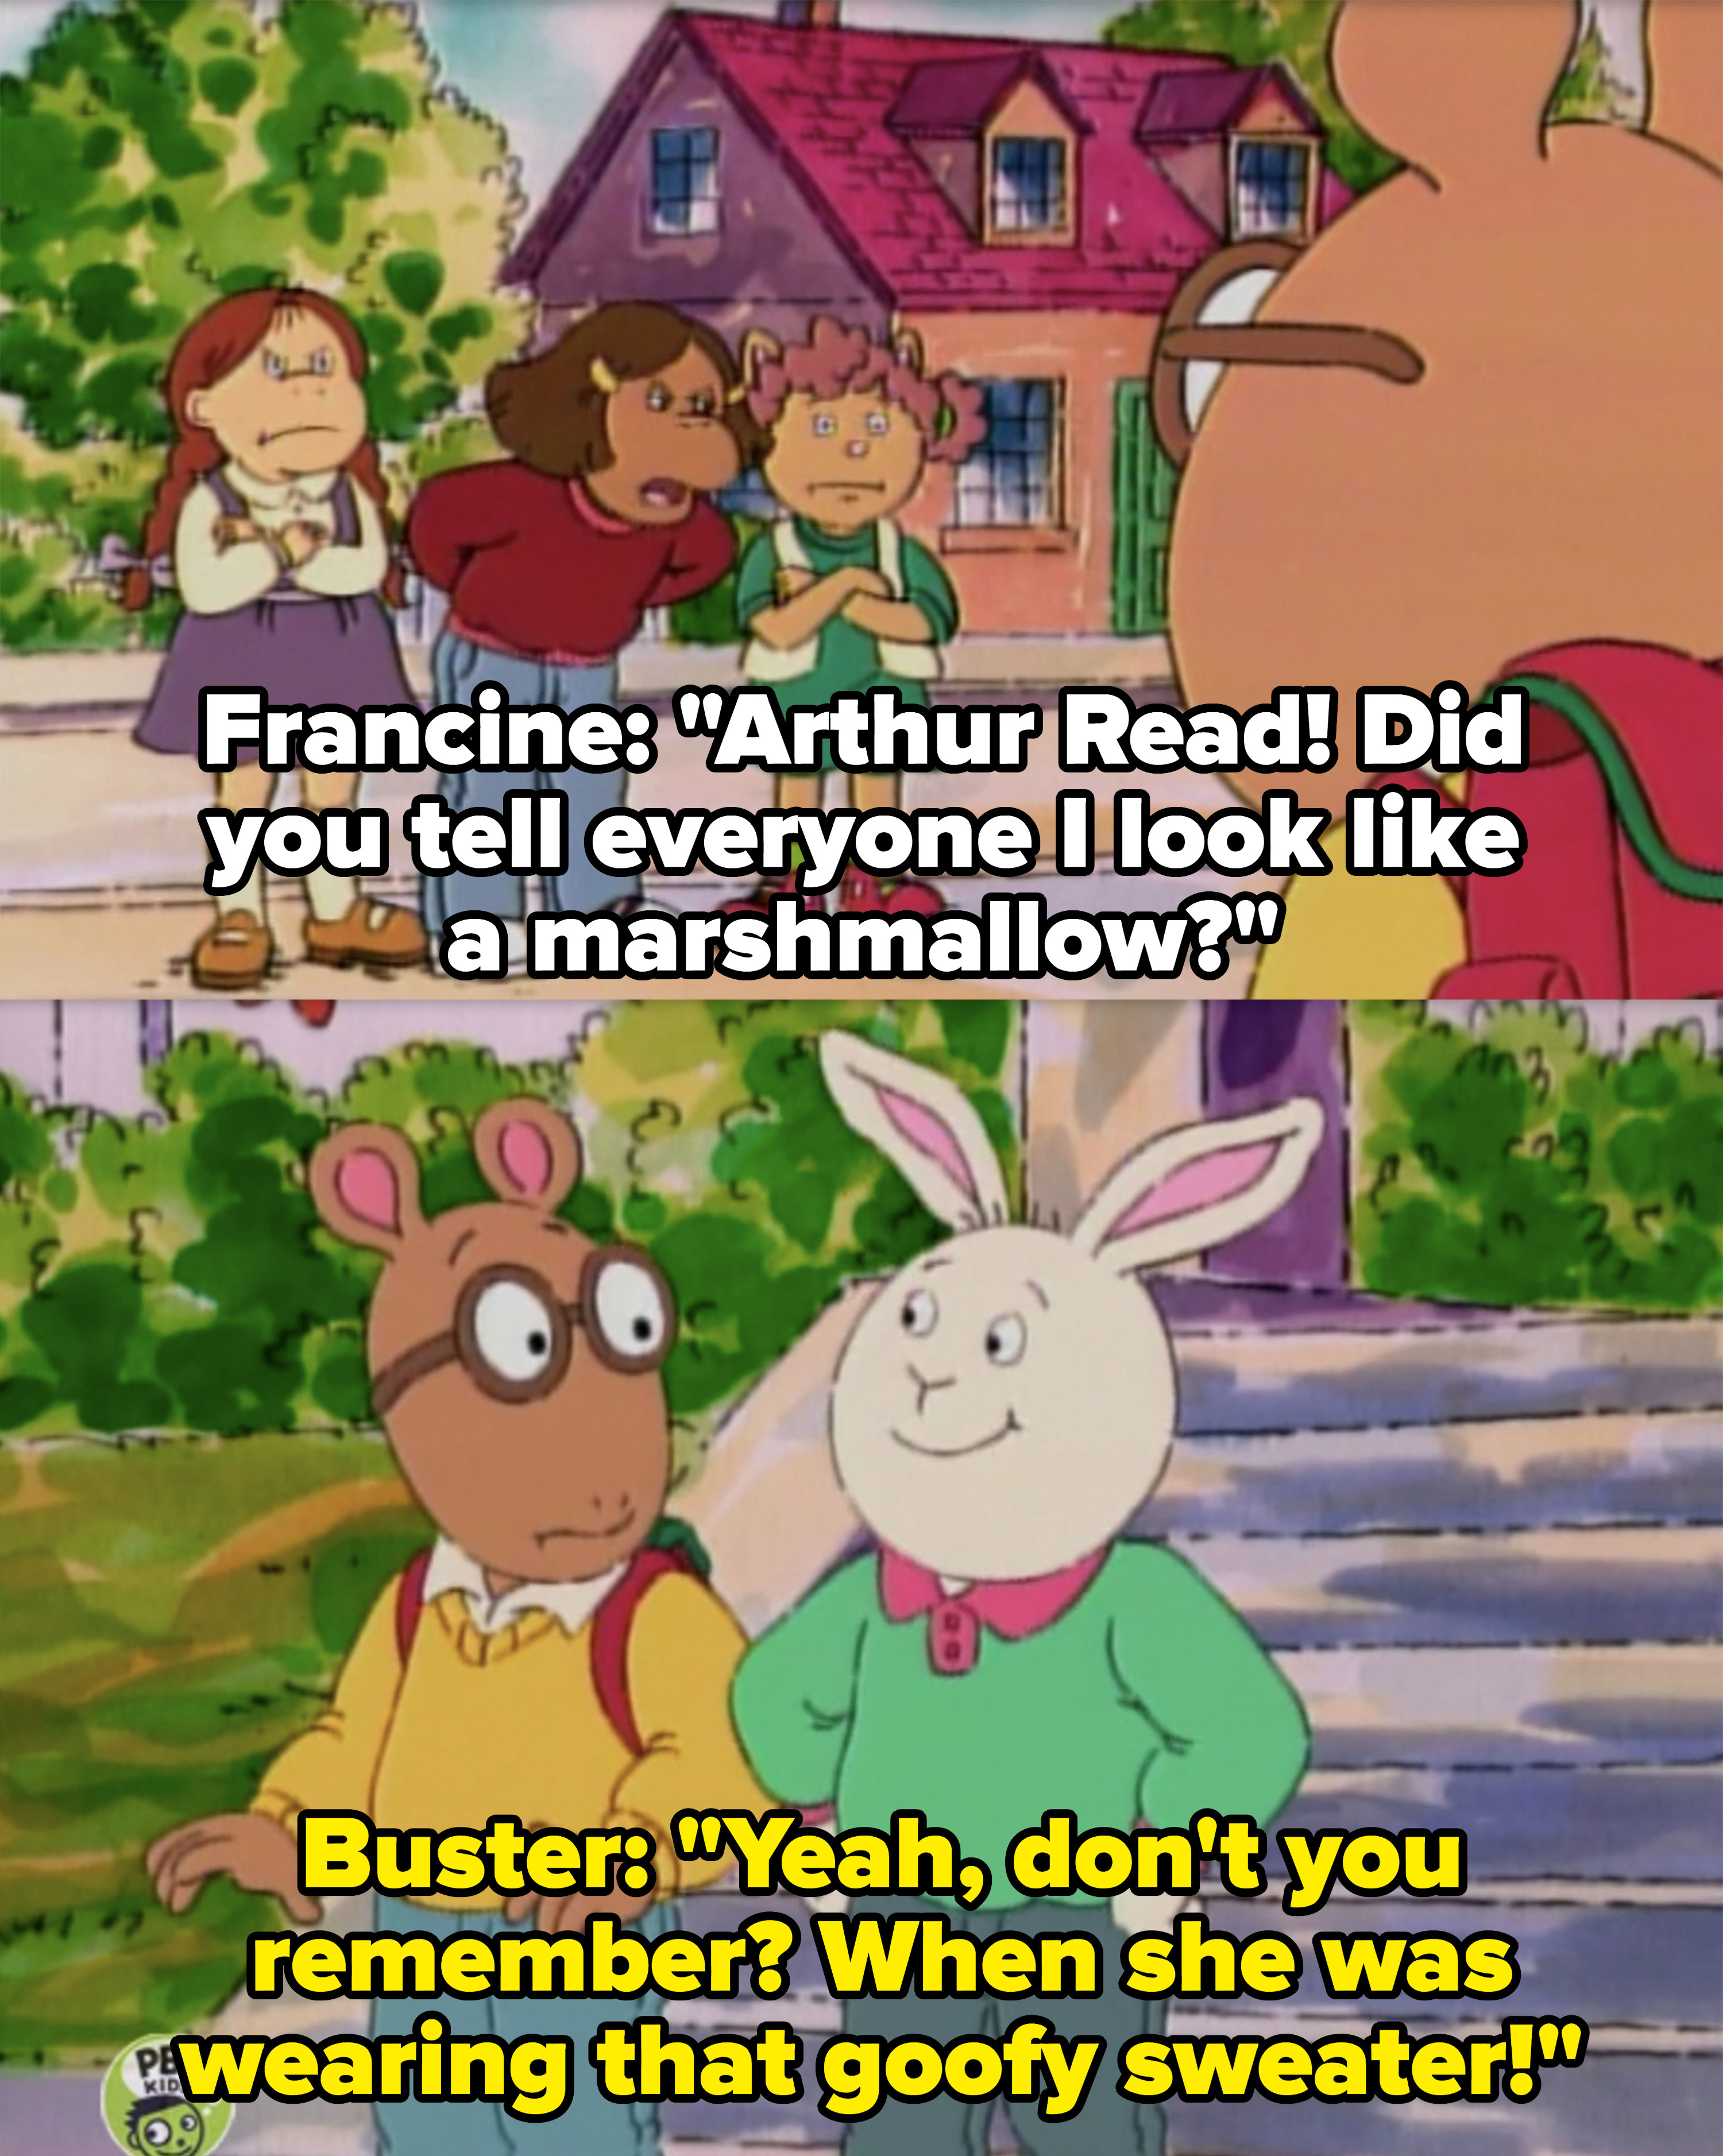 """Francine: """"Arthur Read! Did you tell everyone I look like a marshmallow?"""" Buster: """"Yeah don't you remember? When she was wearing that goofy sweater"""""""